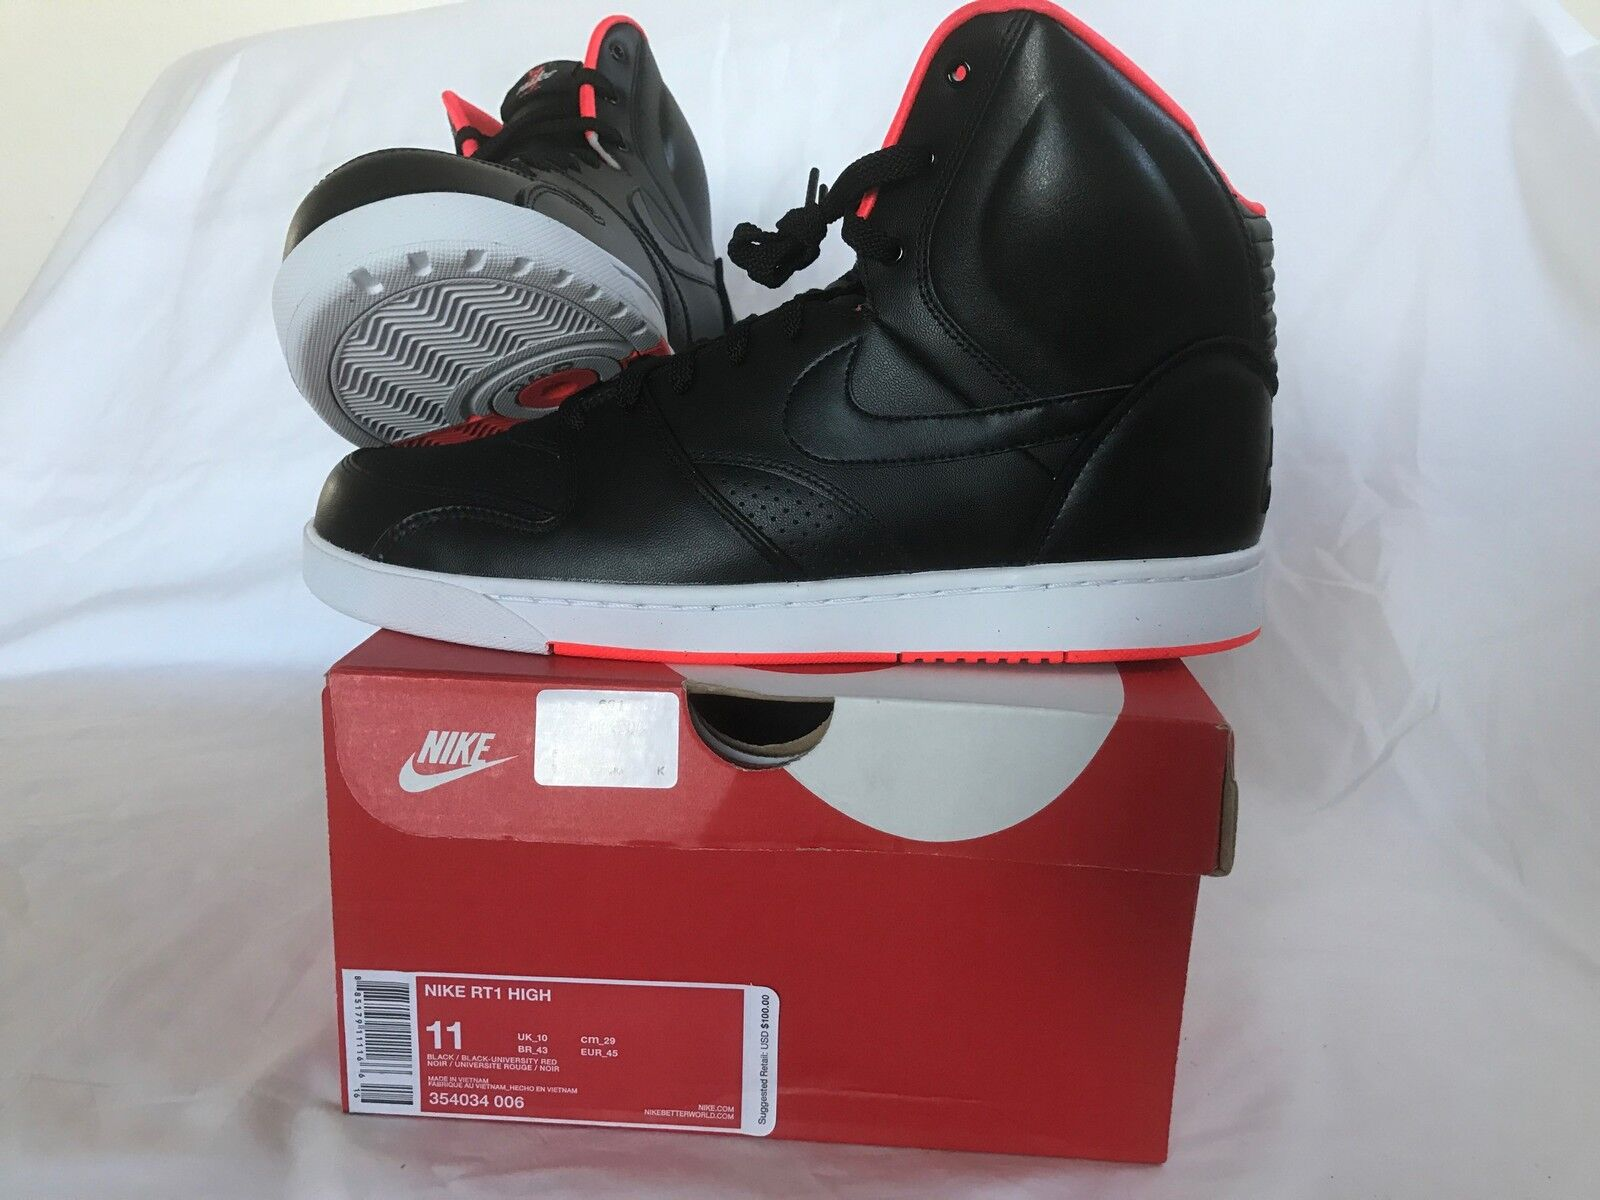 NEW Nike RT1 HIGH  Basketball shoes Men Size 11 w BOX